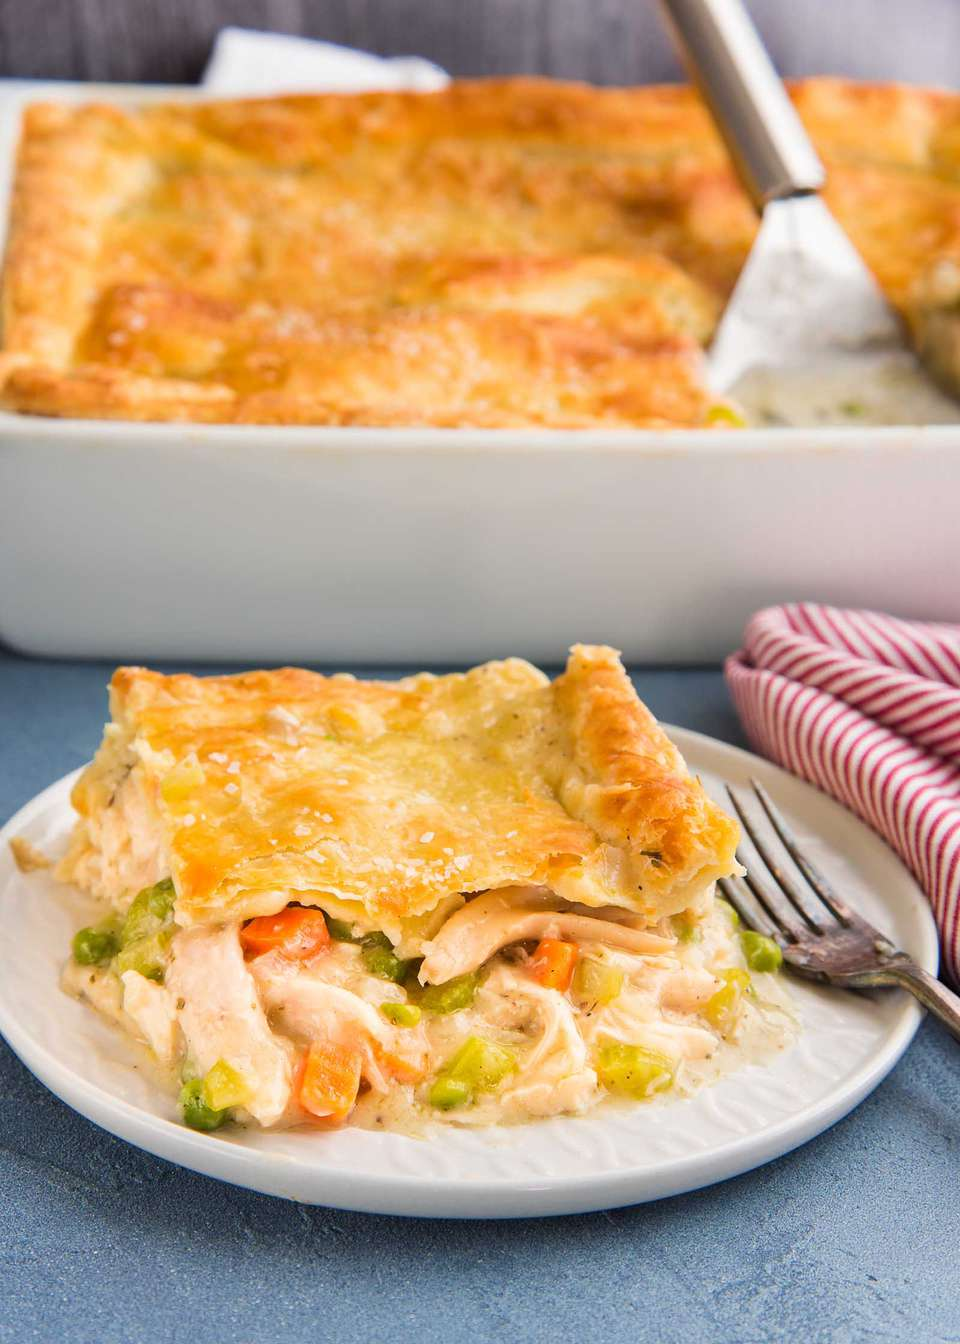 A slice of homemade Chicken Pot Pie is on a white plate and the rest of the casserole is behind it.